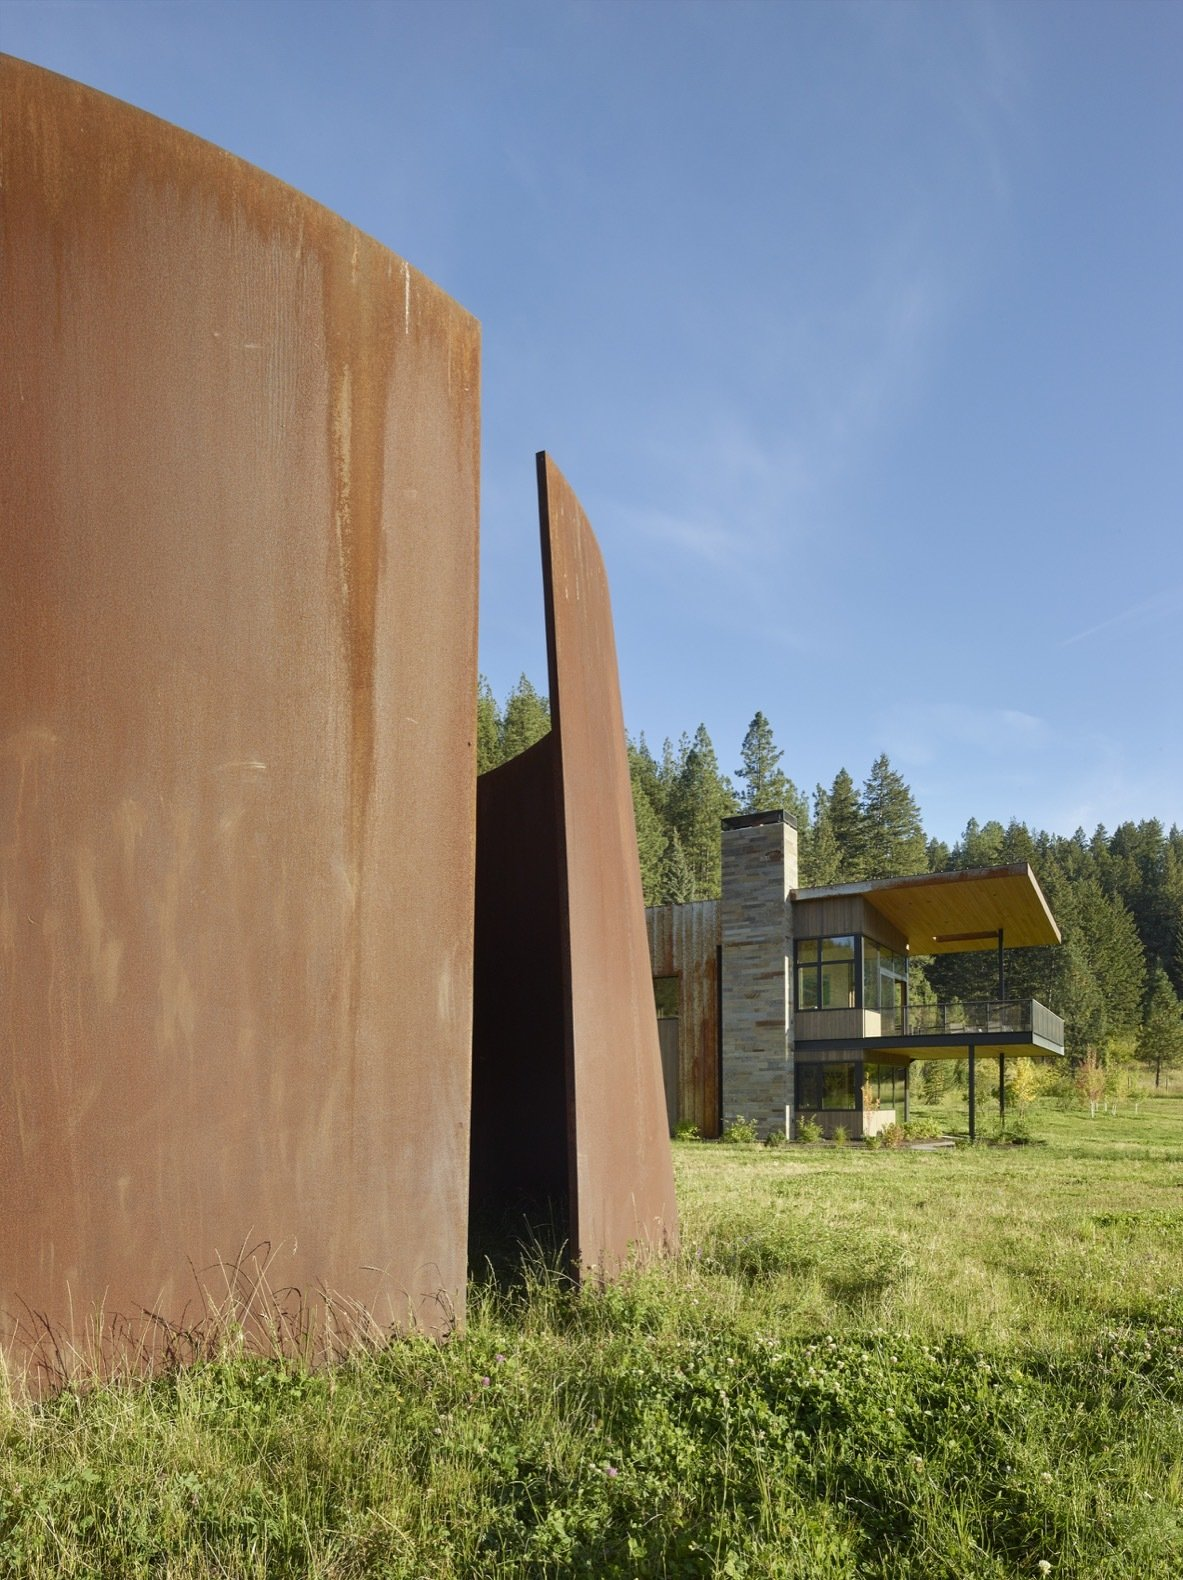 Outdoor, Trees, and Grass The property also includes one of Richard Serra's monumental sculptures made of weathering steel.   Photo 11 of 12 in A Modern Montana House Mixes a Love of Art With the Outdoors